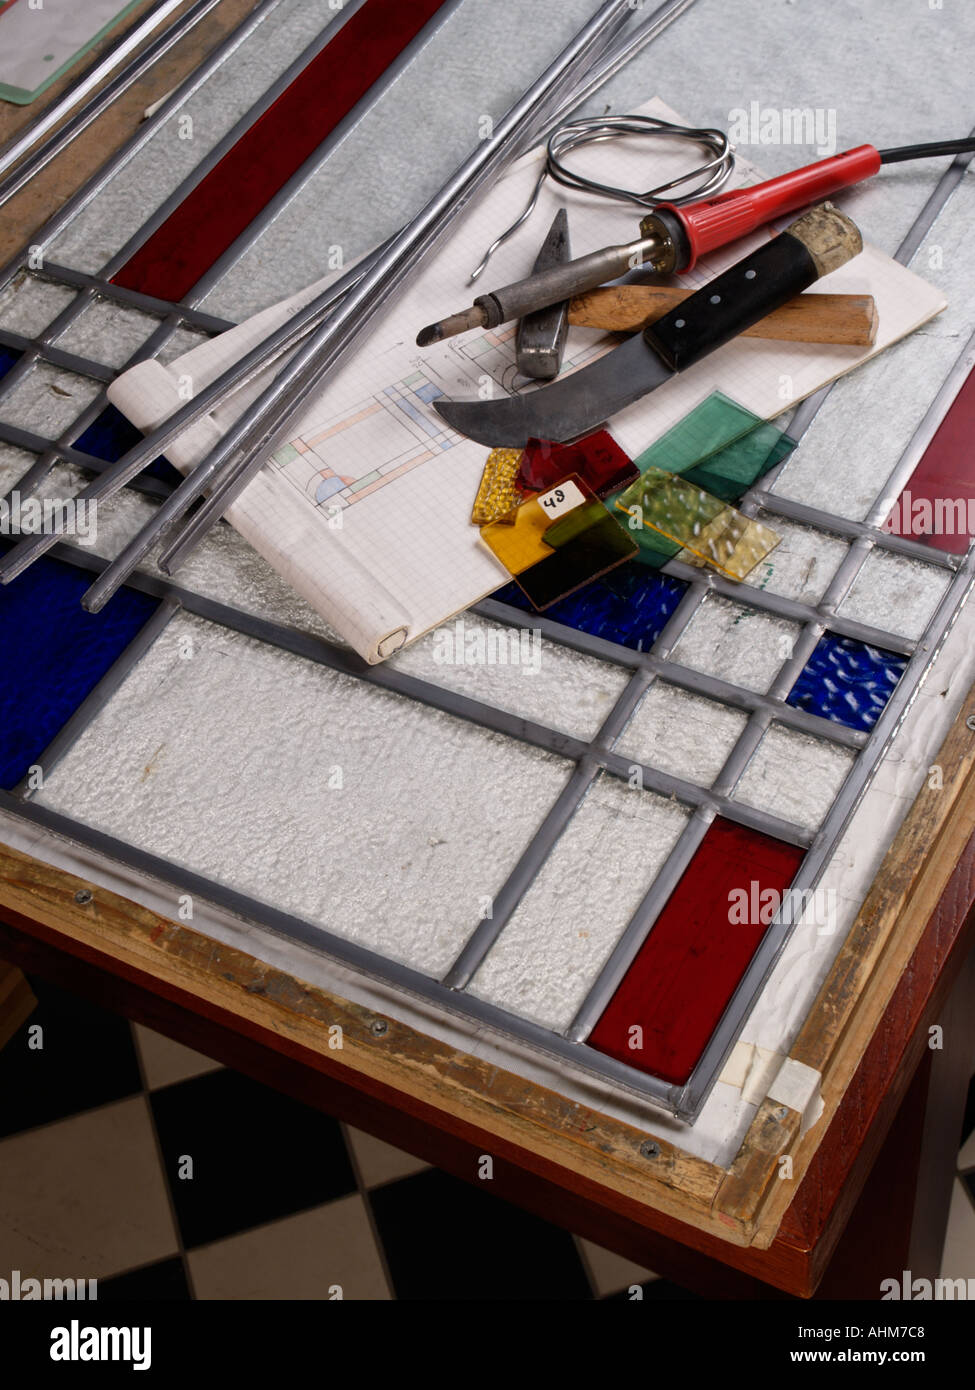 Equipment and materials needed to make leaded glass windows including soldering iron various kinds of glass sketch and lead - Stock Image